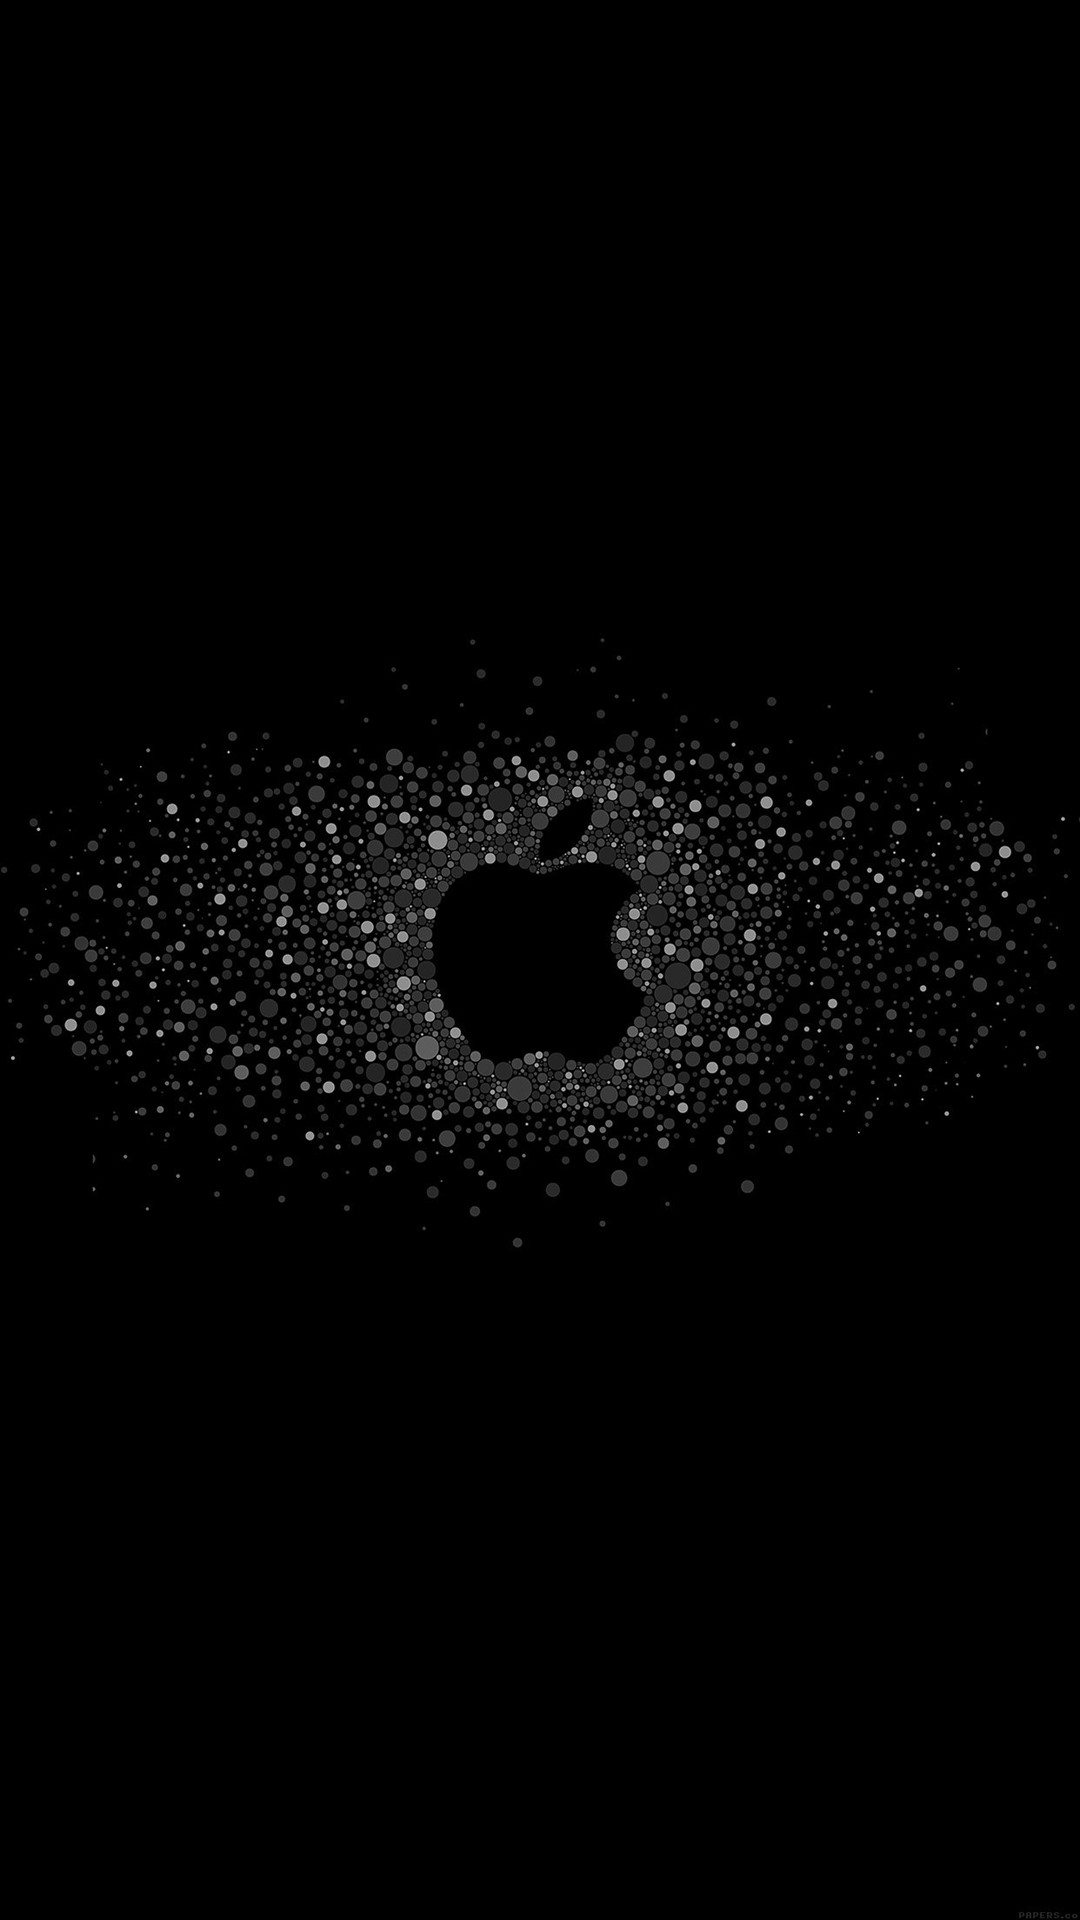 Iphone Black Wallpapers Hd 77 Images